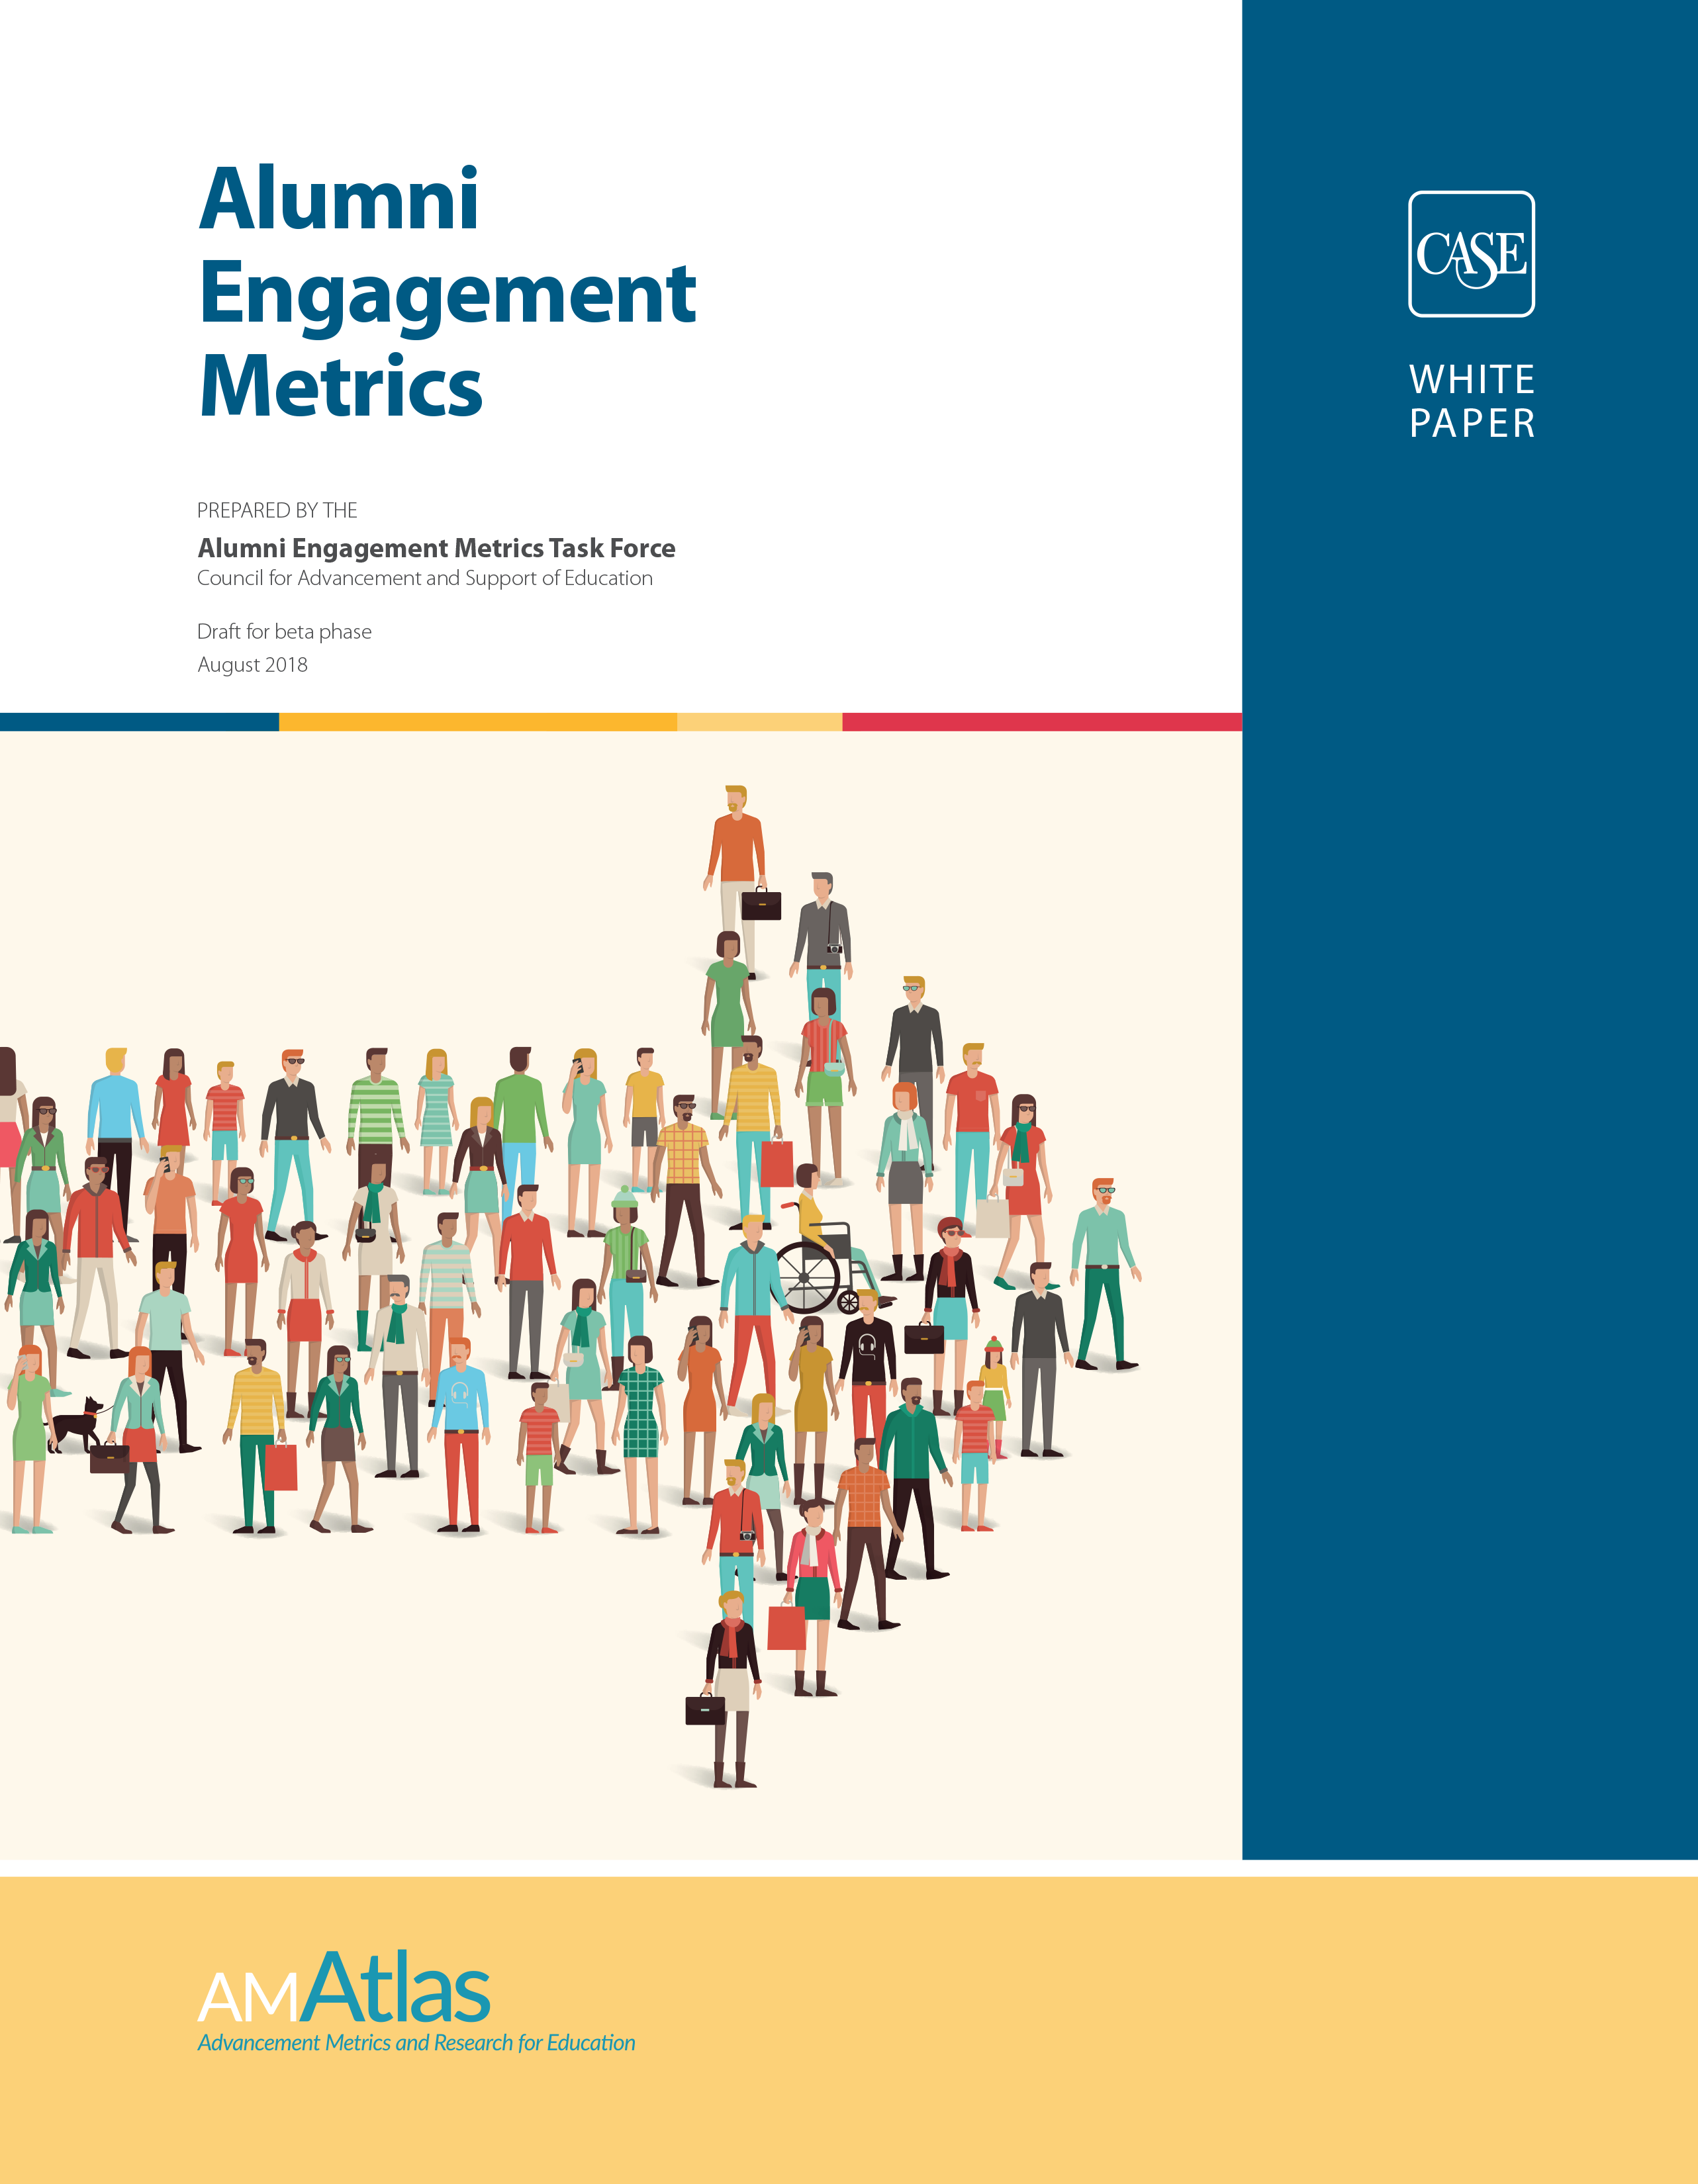 Cover image of the Alumni Engagement Metrics white paper